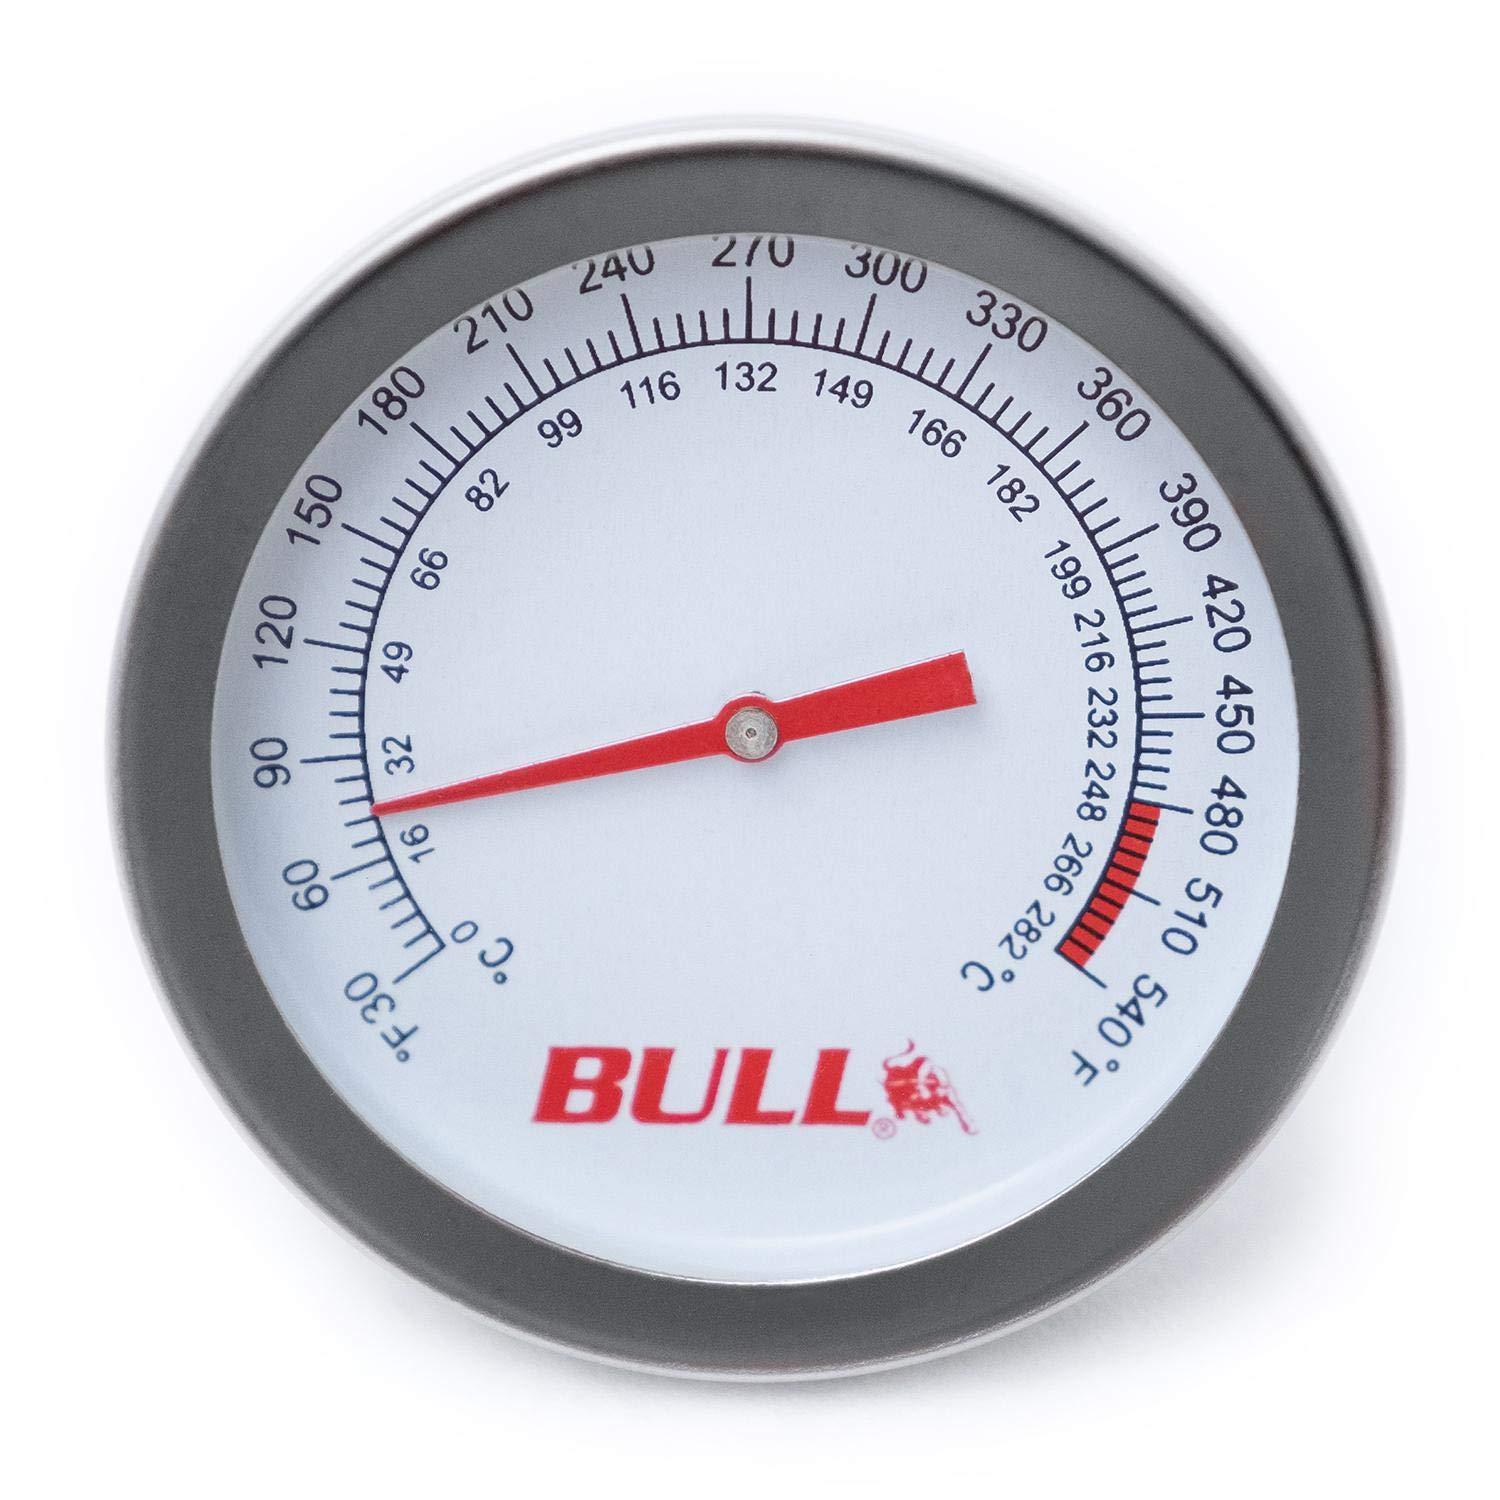 Bull Grills Replacement Temperature Gauge - 16509 by Bull Grills